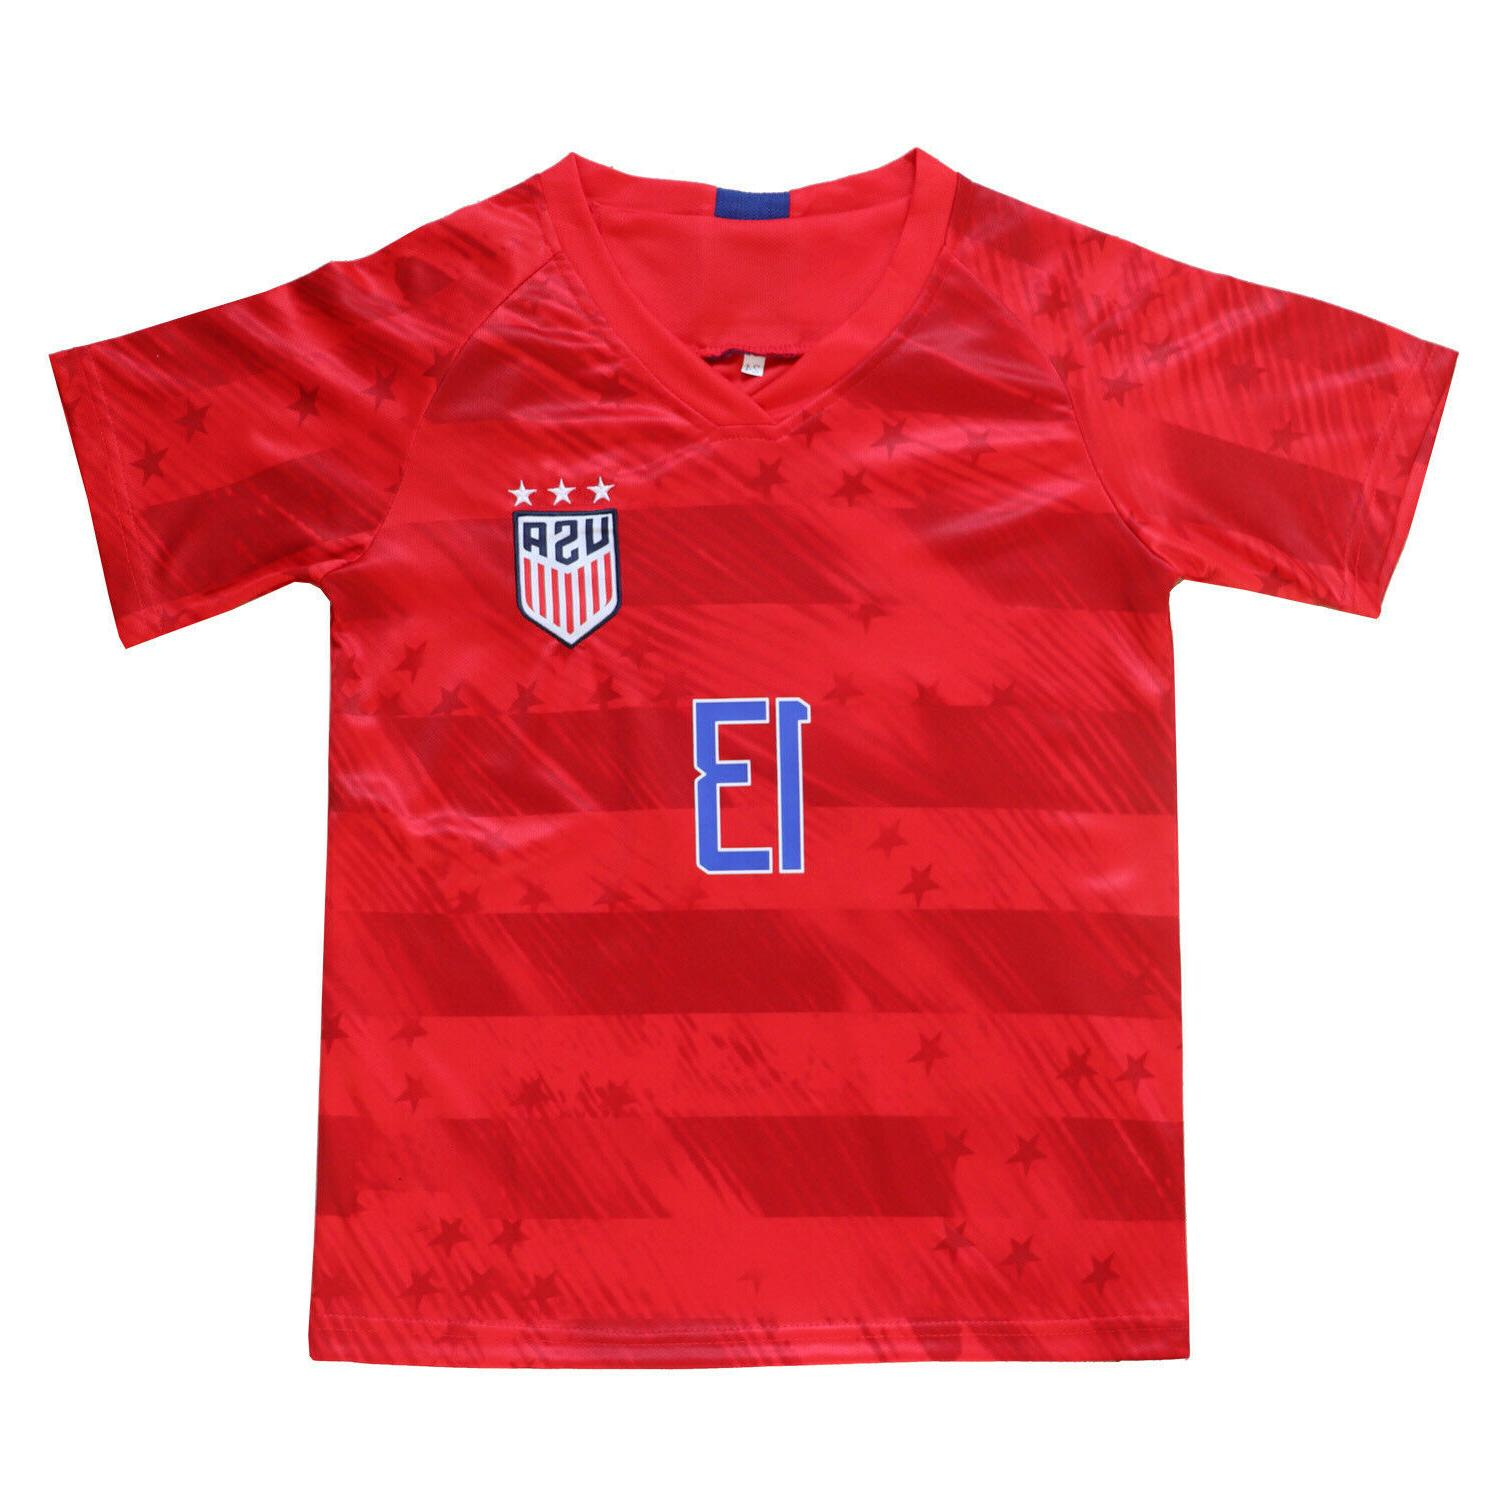 USA #13 Kids Home Soccer Jersey & Youth